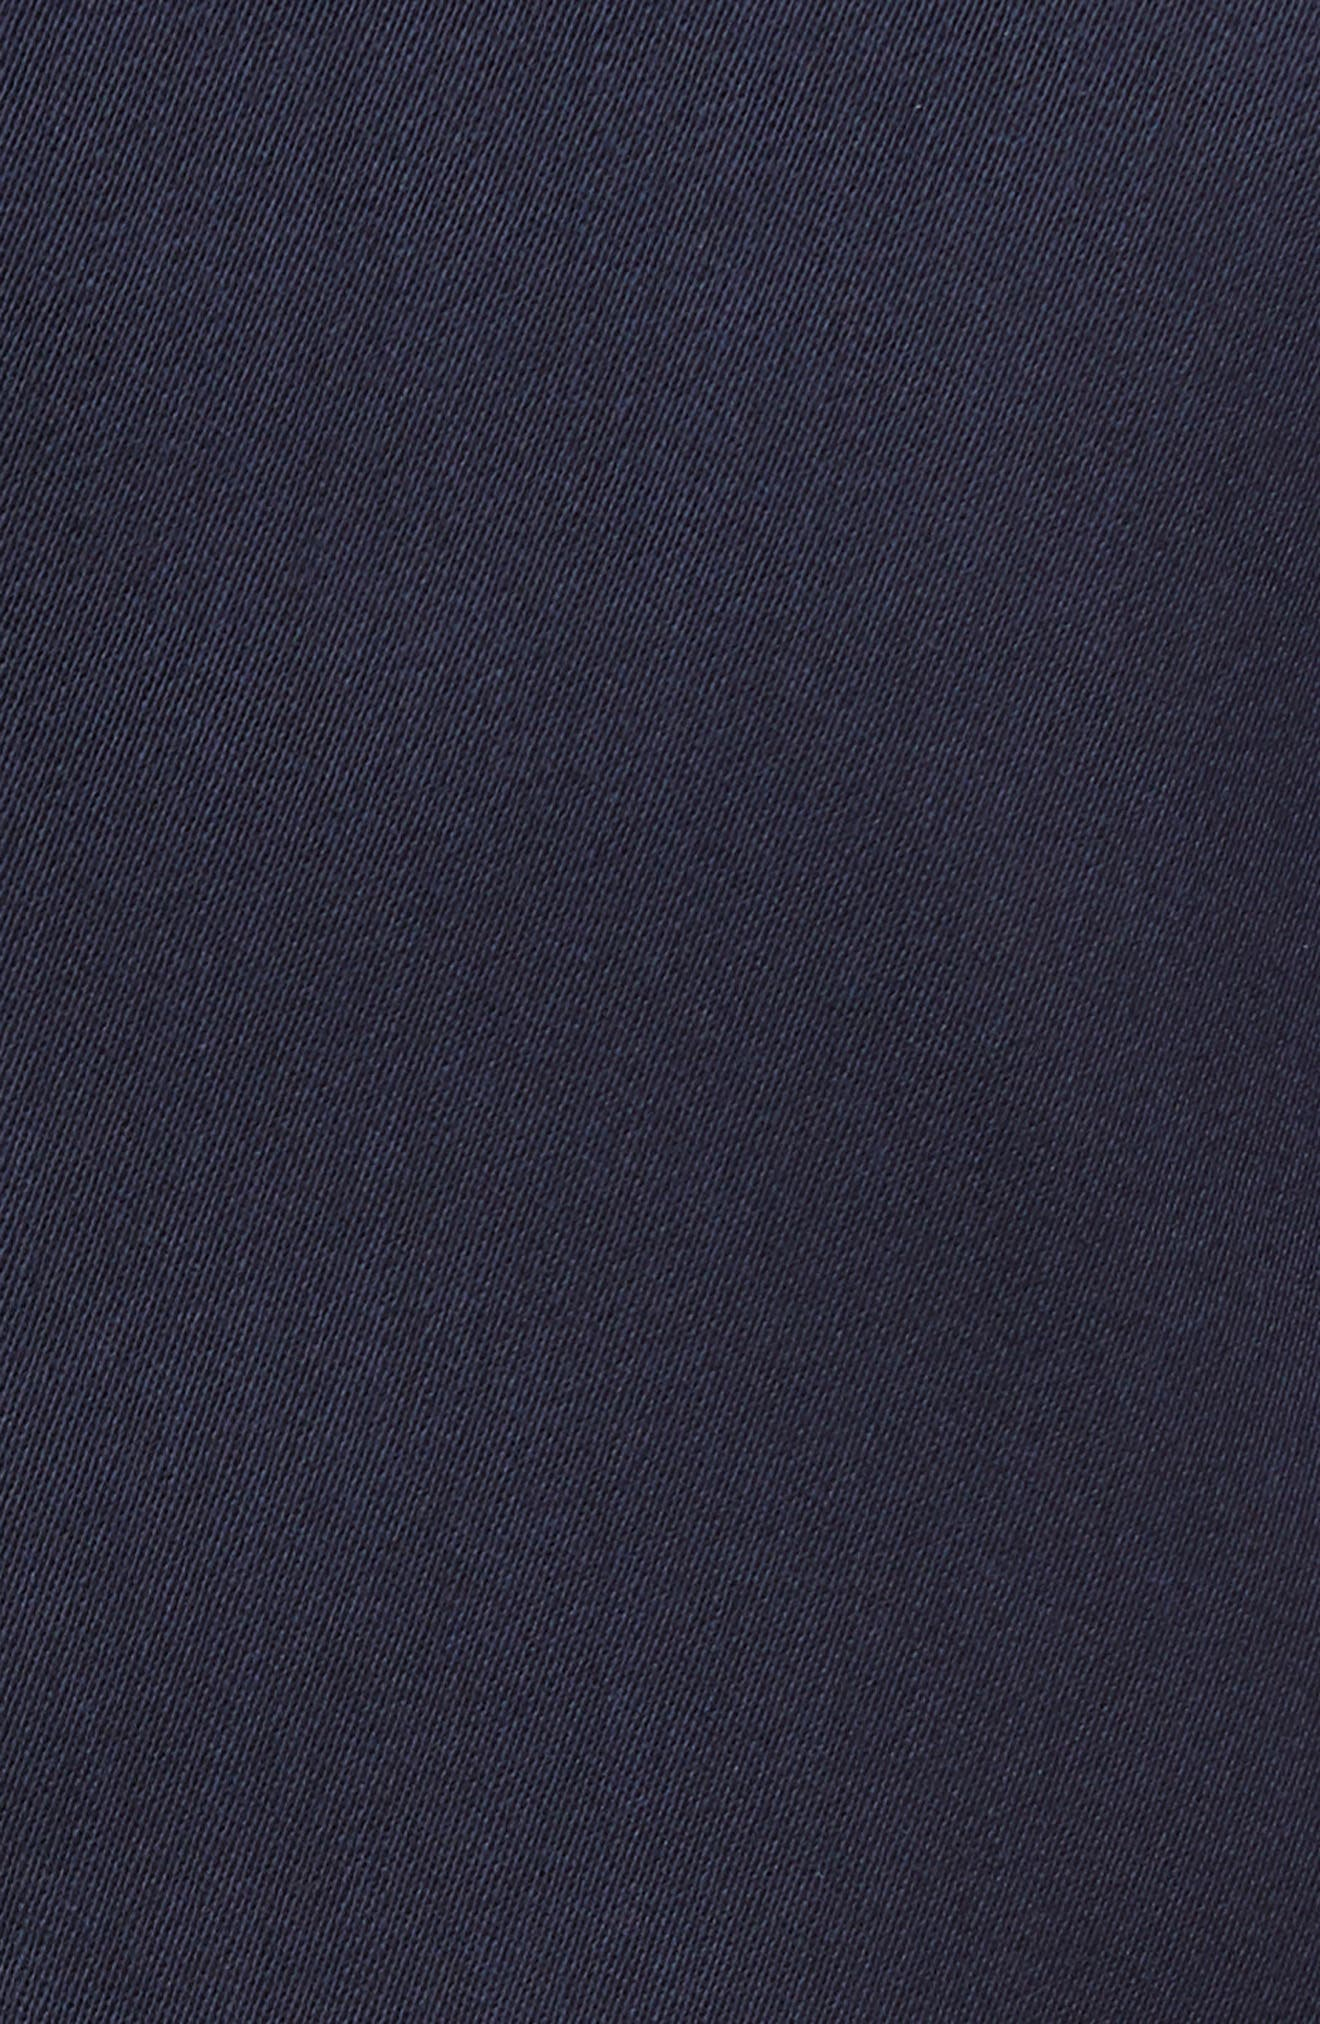 Unconstructed Wool Blend Sport Coat,                             Alternate thumbnail 6, color,                             NAVY